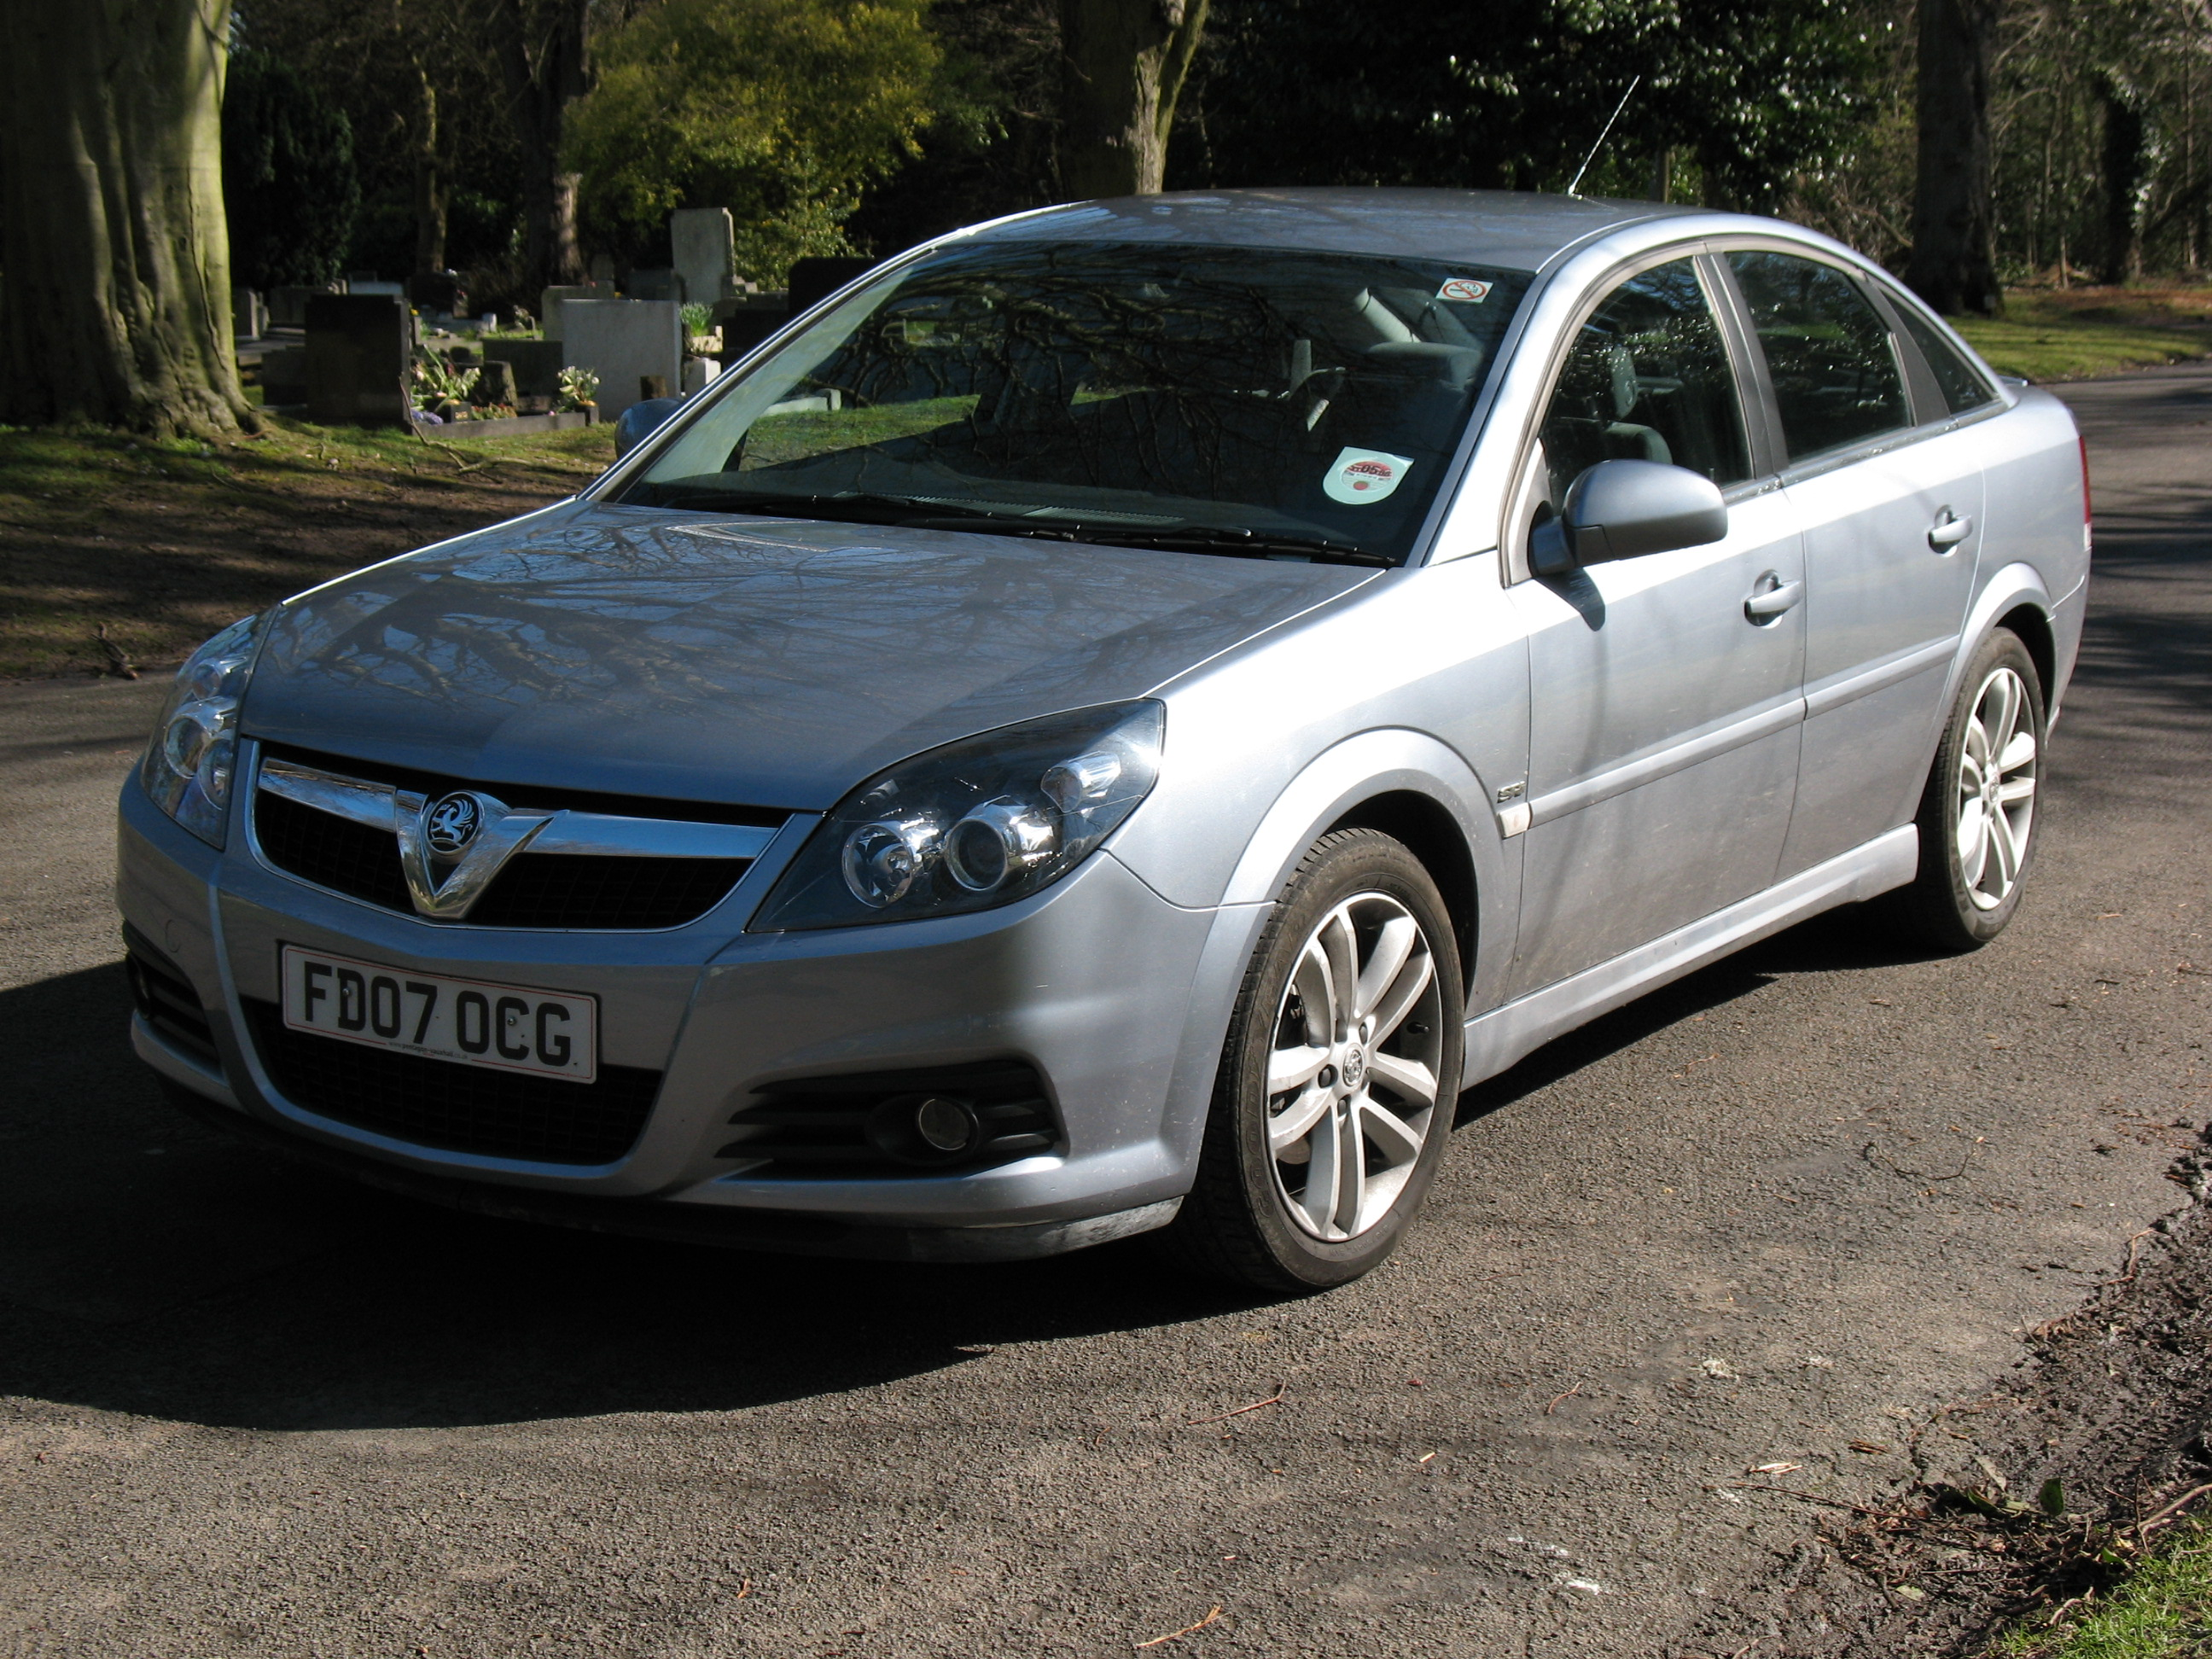 Vauxhall Zafira Vxr Cars For Sale